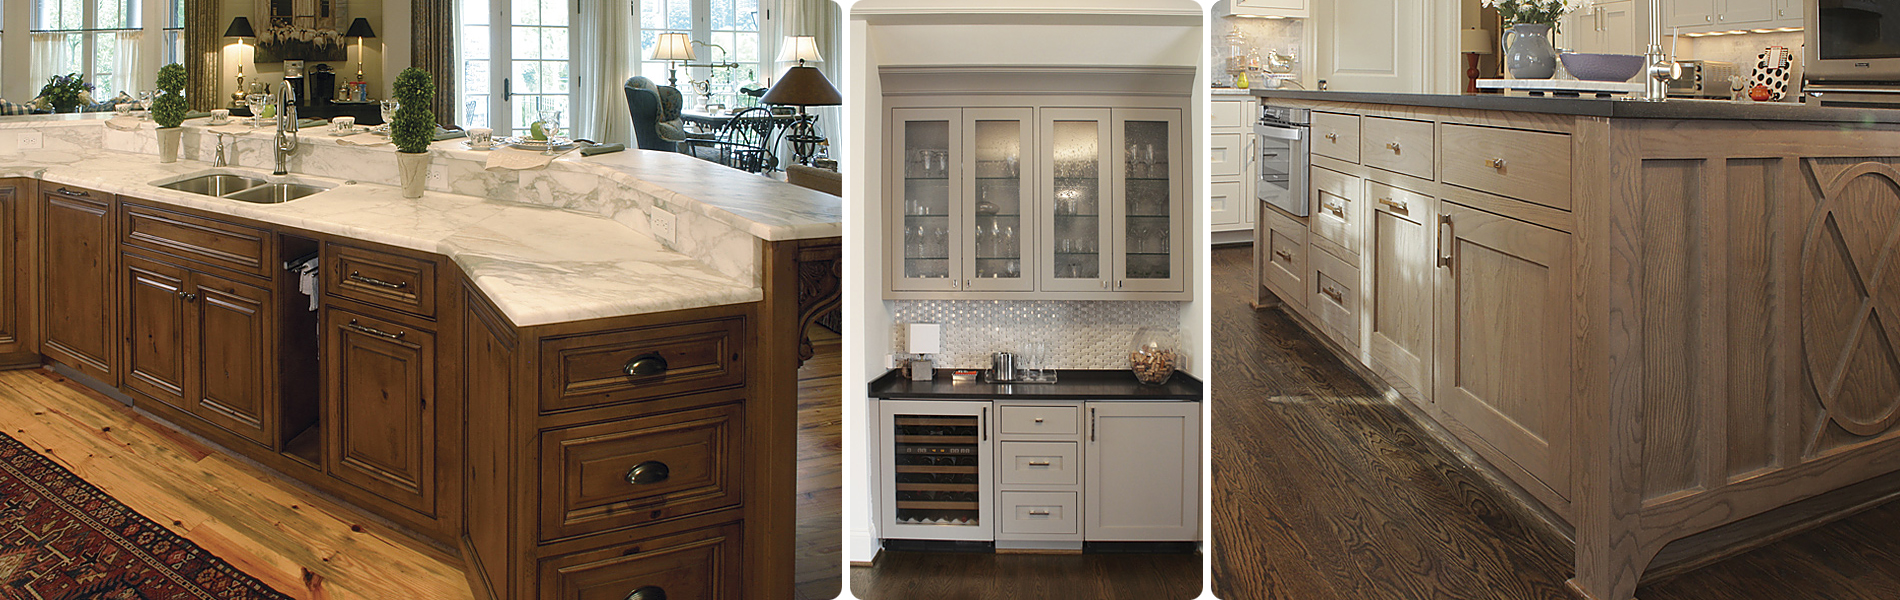 anderson cabinet llc   specializing in finely crafted cabinetry  rh   andersoncabinetllc com